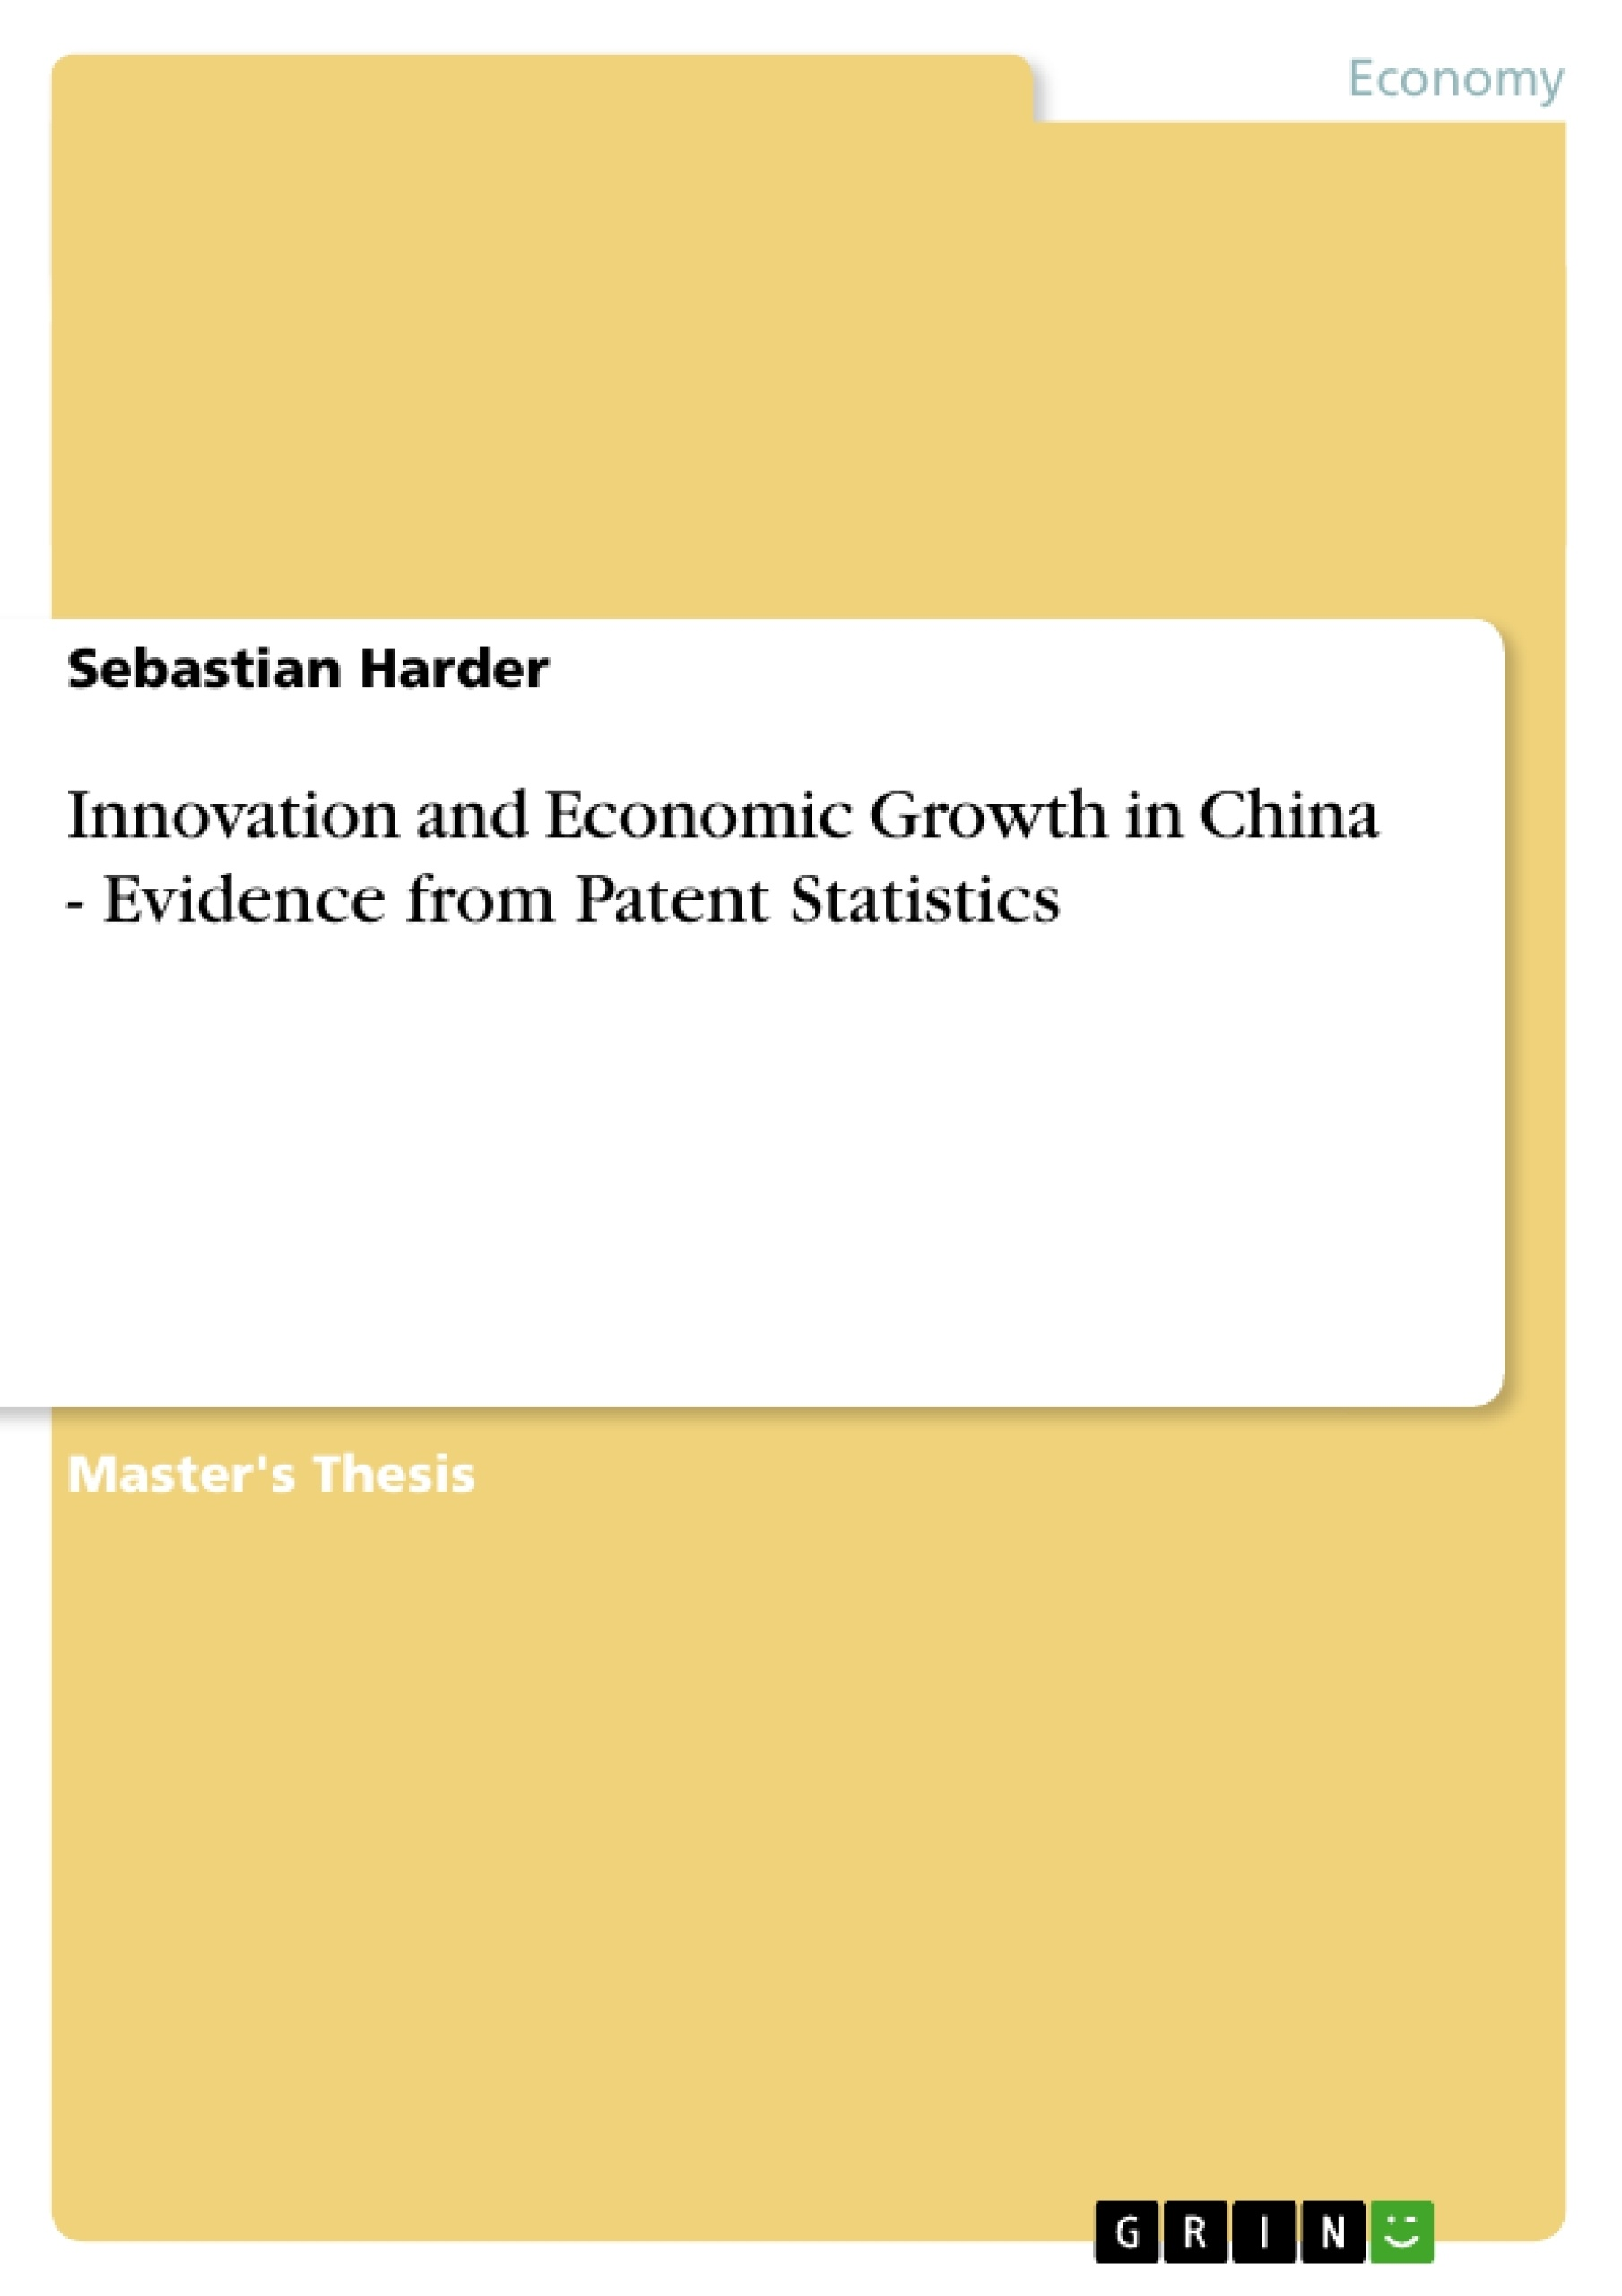 Title: Innovation and Economic Growth in China - Evidence from Patent Statistics